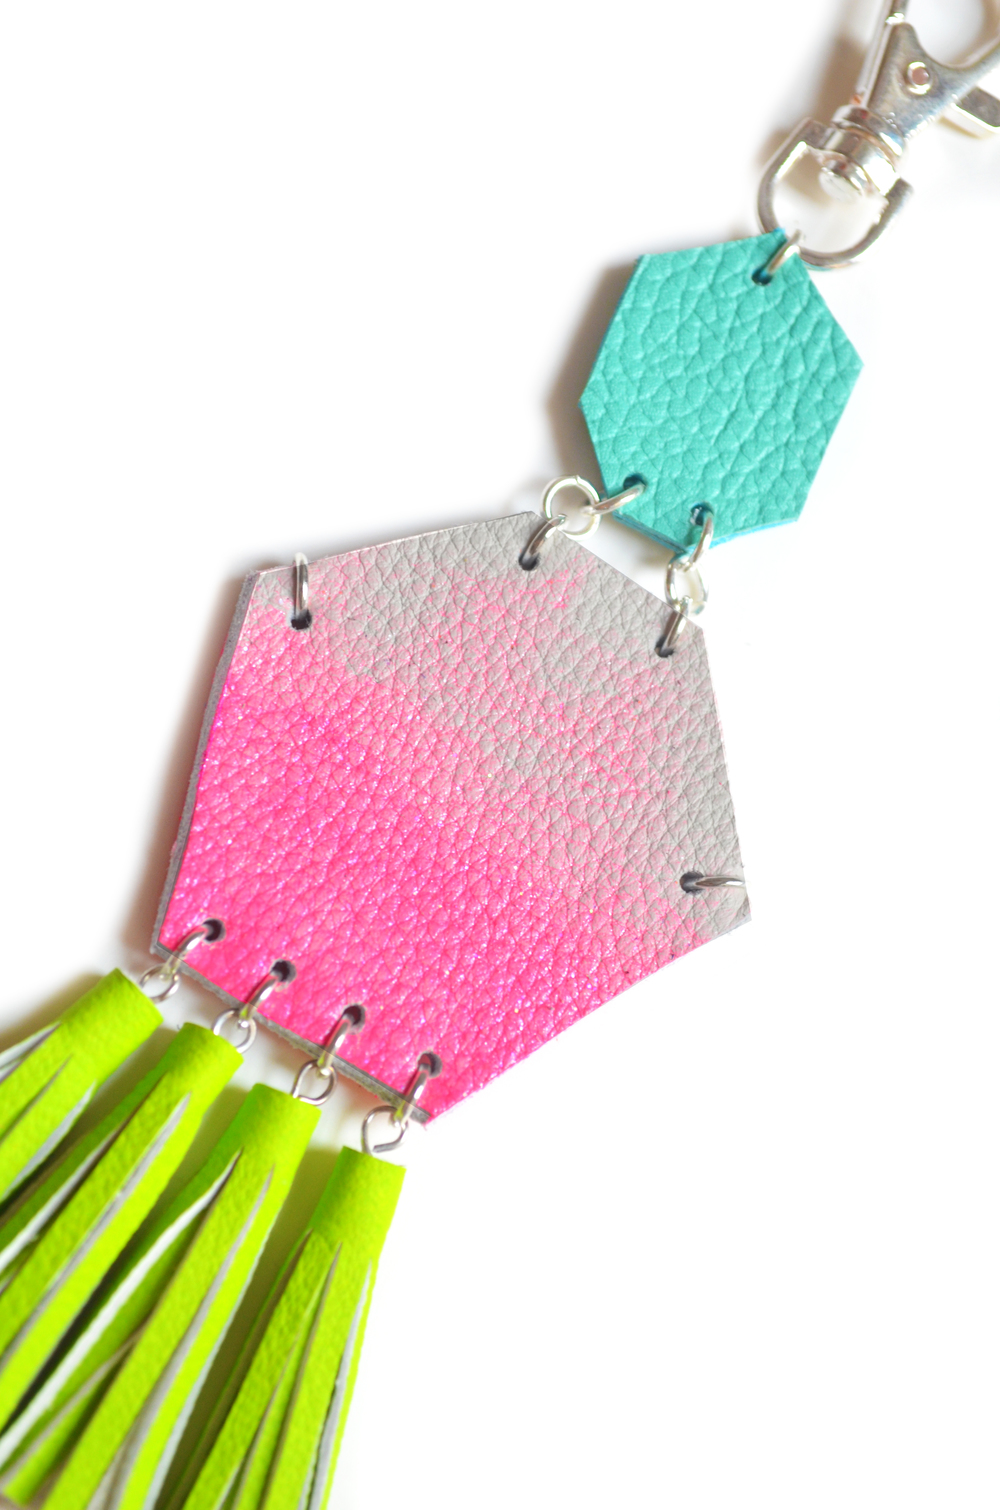 Hot Pink Key Chain, Unique Leather Tassel Key Chain, Neon Fringe Purse Clip, Pink Ombre, Turquoise and Neon Green Leather Key Fob, Leather Accessories 2.jpg